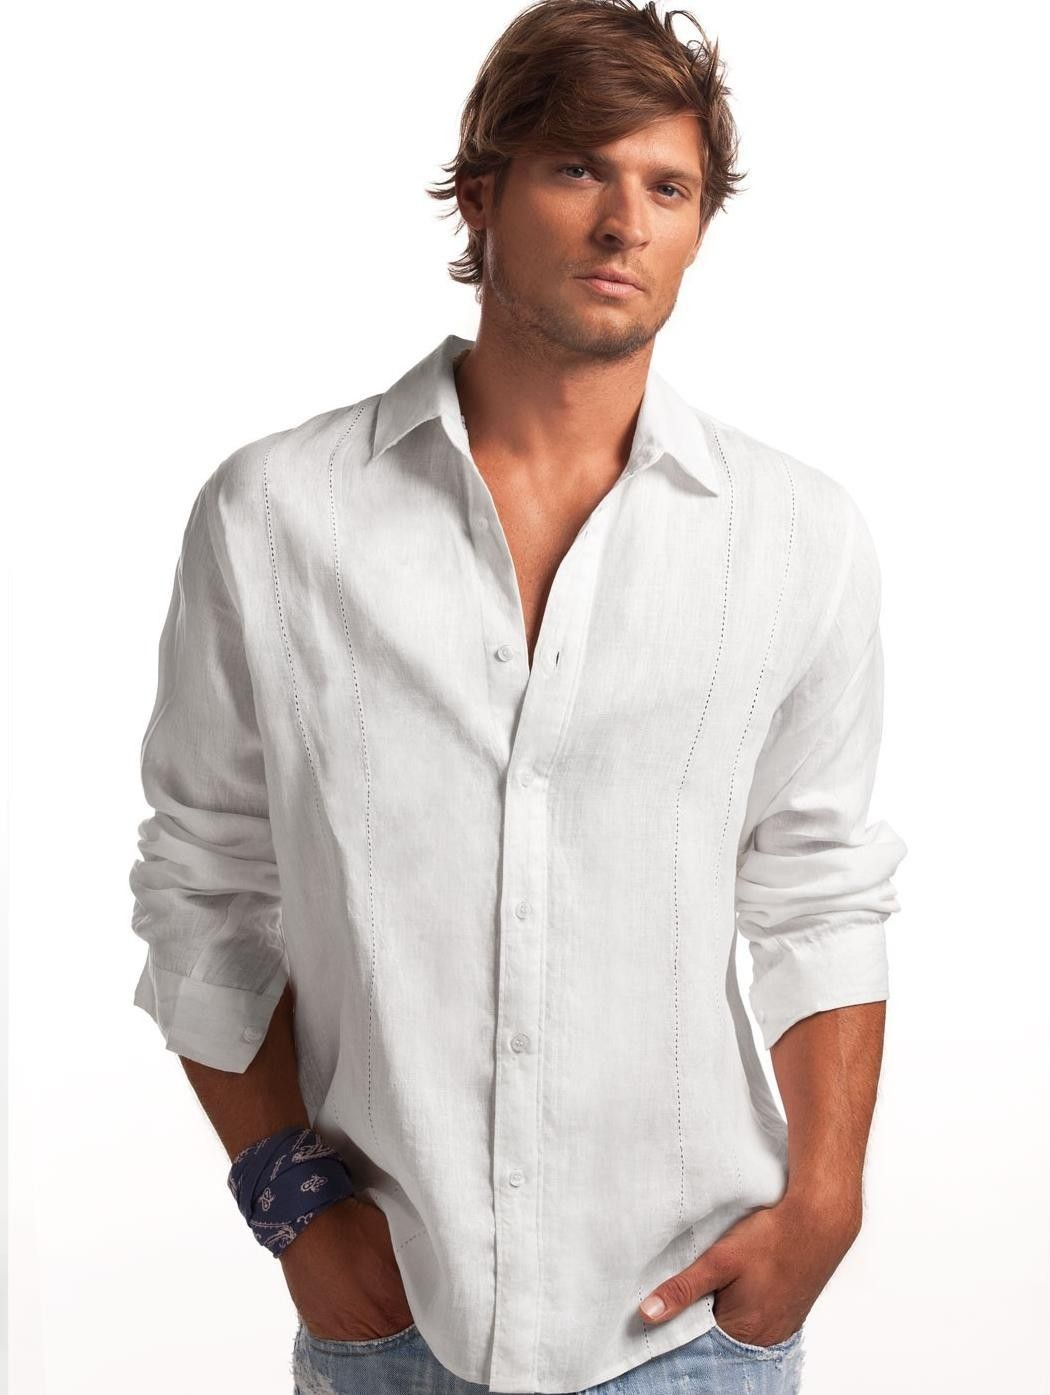 The men's linen shirt helps breathe life into a stylish warm-weather wardrobe. In recent years, a new category of action clothing has become popular, especially among men who hit the gym regularly. Even if you wear these quick-dry sporty looks regularly, you're bound to need a dressier alternative.